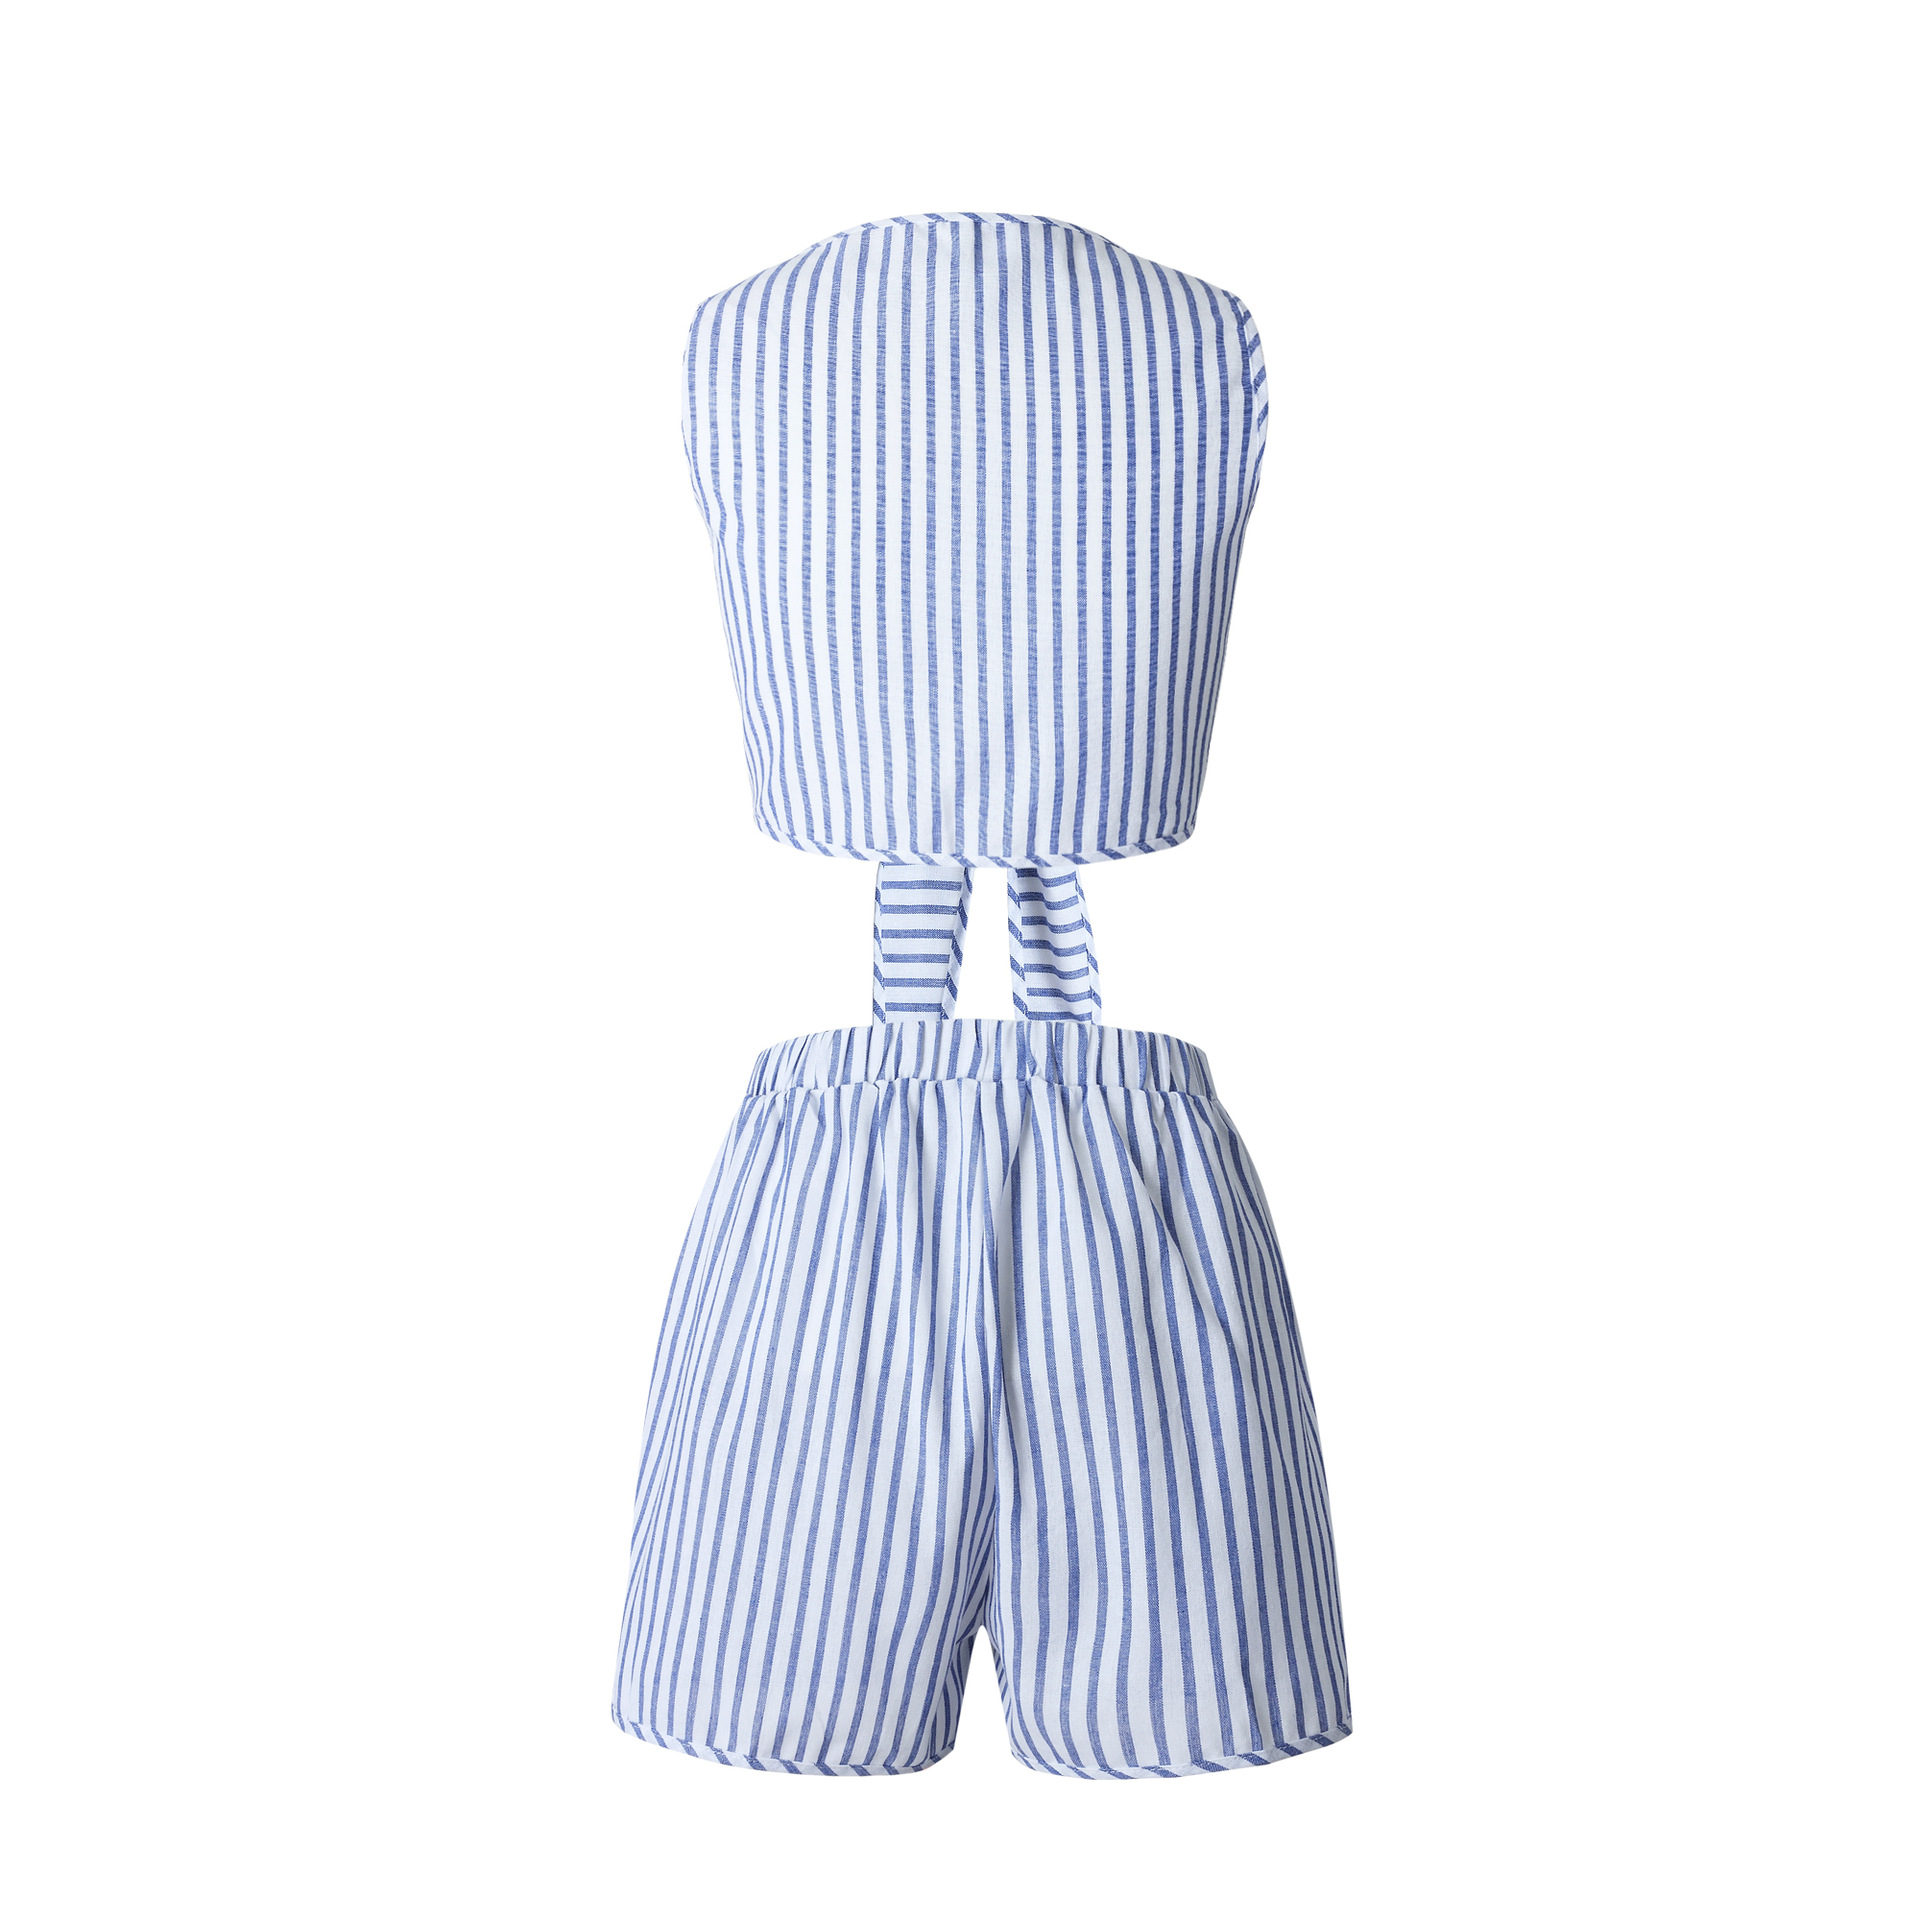 HTB1adrZQVXXXXXNXpXXq6xXFXXXH - FREE SHIPPING Summer Sexy Blue Striped Women Suits Sleeveless Deep V Neck Lace Up Crop Top + Short Set Fashion Beach Two Piece Set JKP287